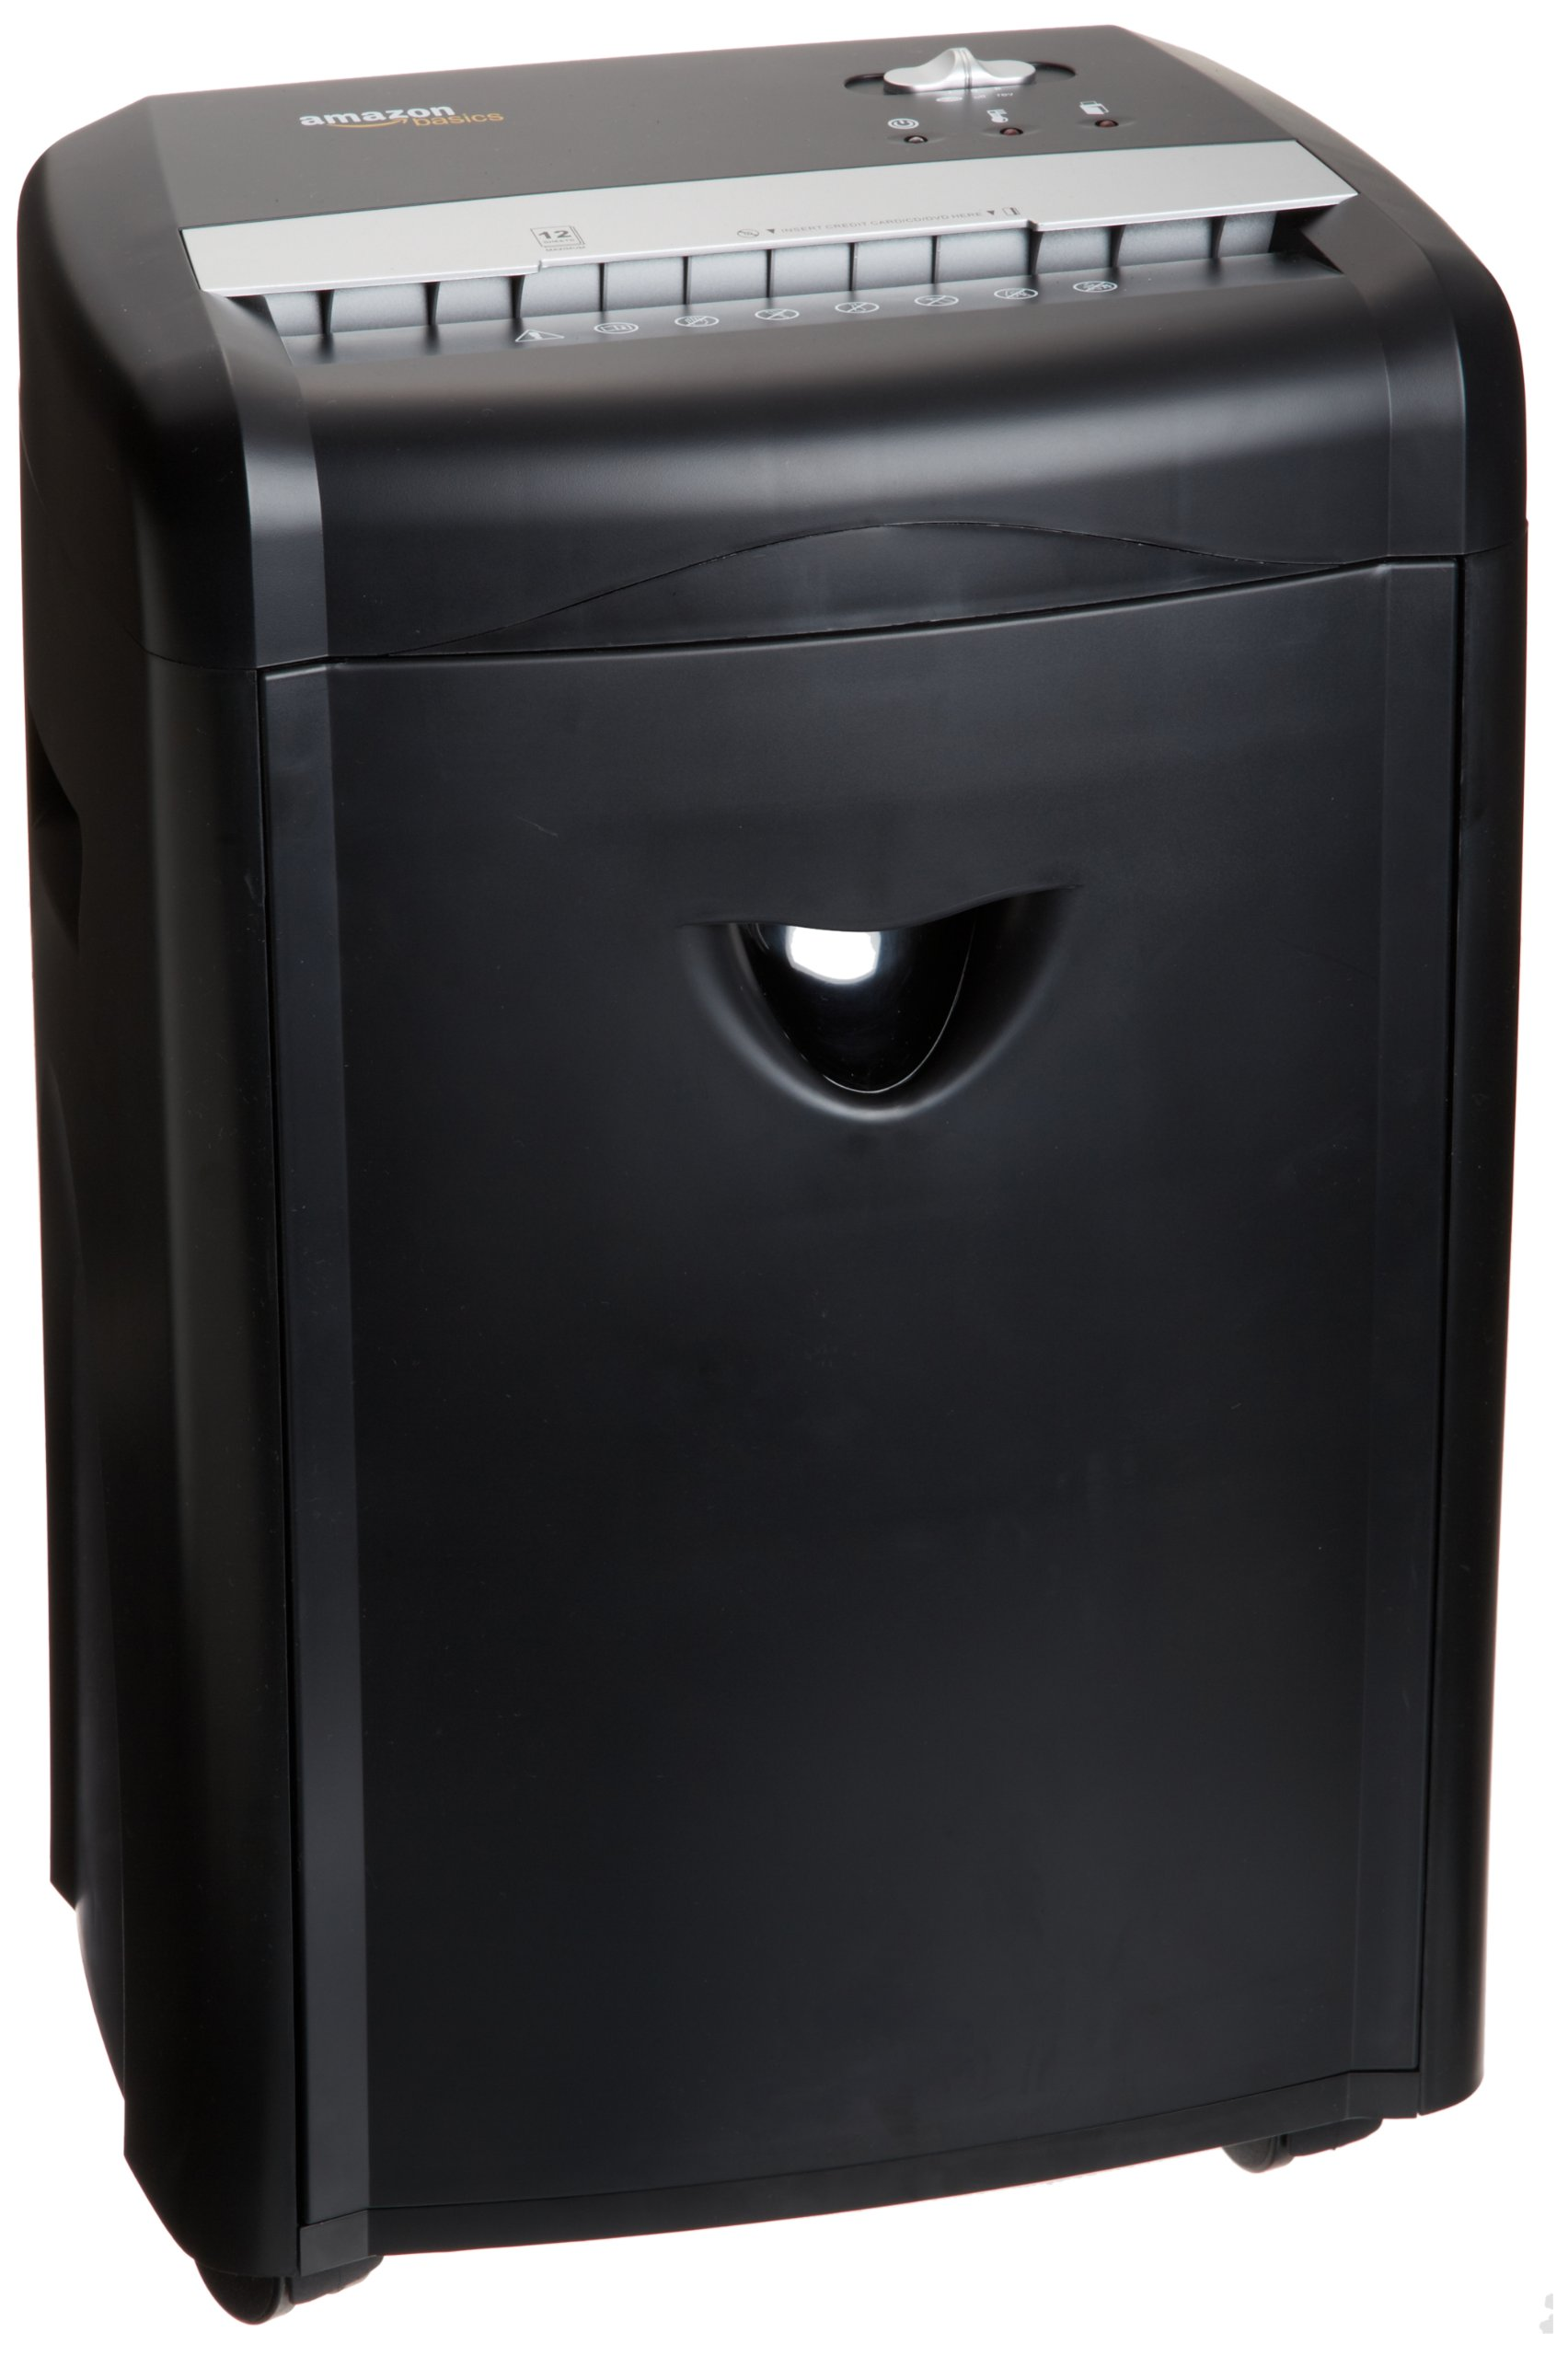 AmazonBasics 12 Sheet High Security Micro Cut Shredder